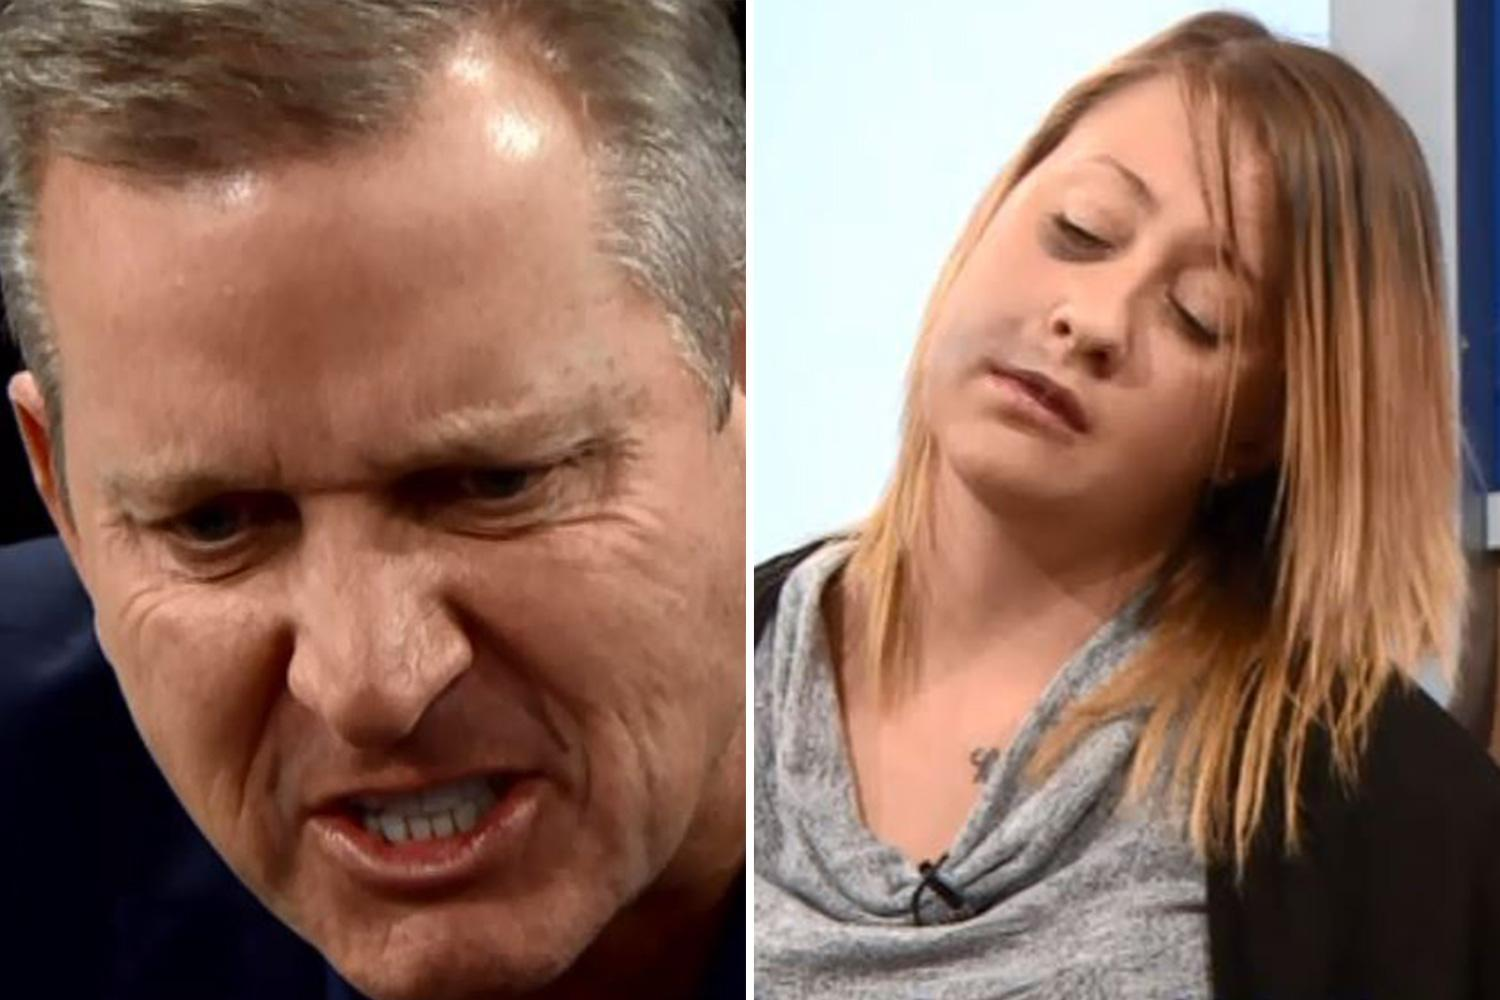 Jeremy Kyle Show viewers shocked as former swimmer admits she drinks two litres of vodka a day, sells her body to pay for booze and drives her car while drunk